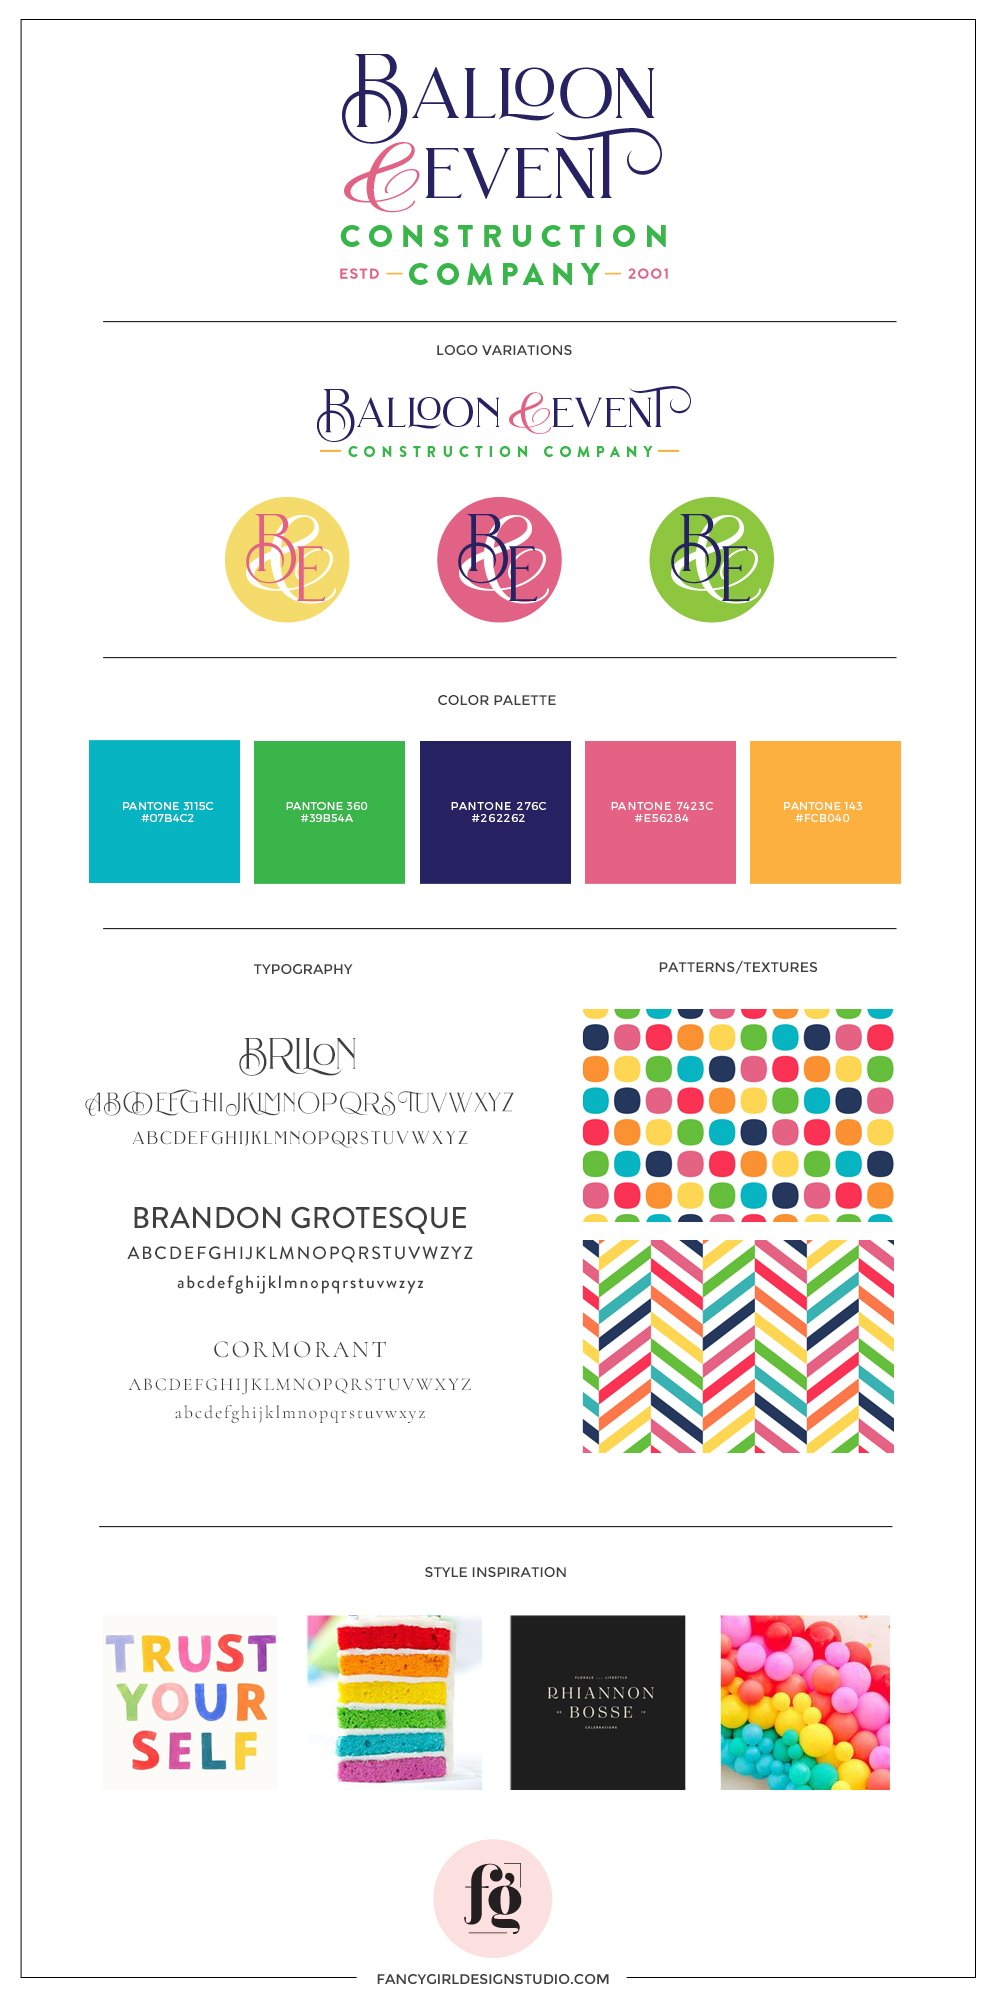 Brand Guide for Balloon & Event Construction Company by Fancy Girl Design Studio